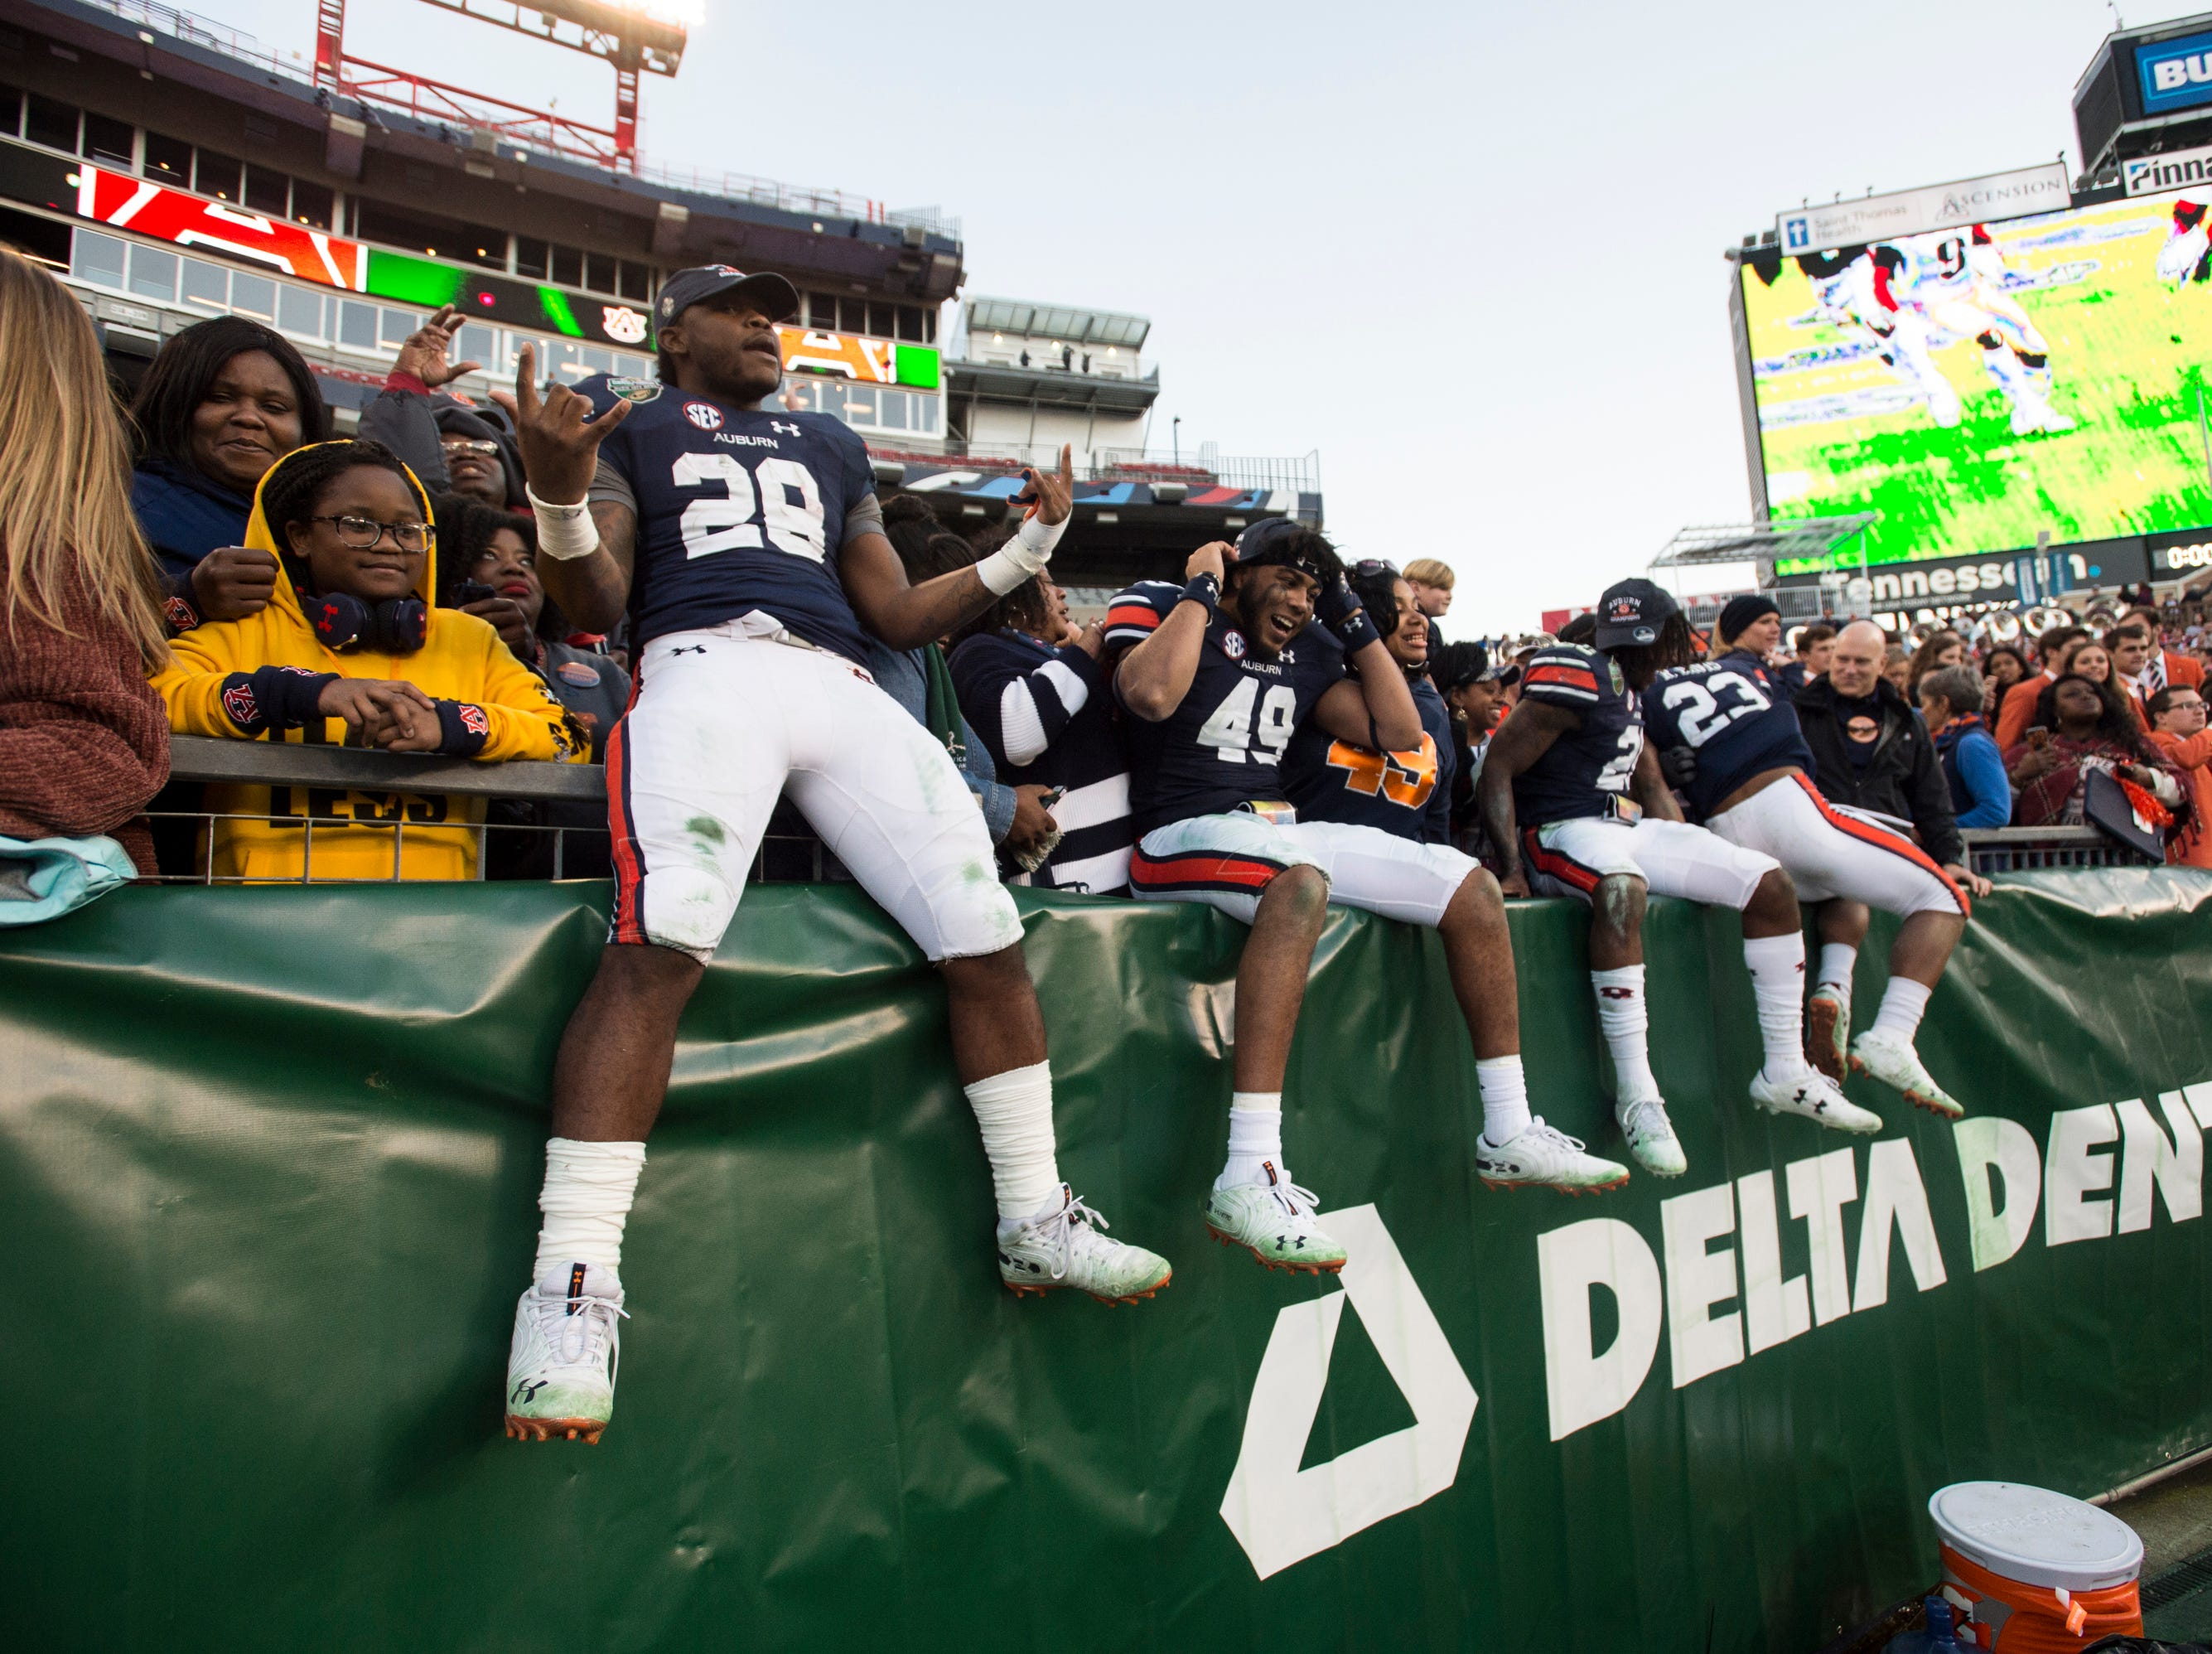 Auburn players join the fans after the Music City Bowl at Nissan Stadium in Nashville, Tenn., on Friday, Dec. 28, 2018. Auburn defeated Purdue 63-14.